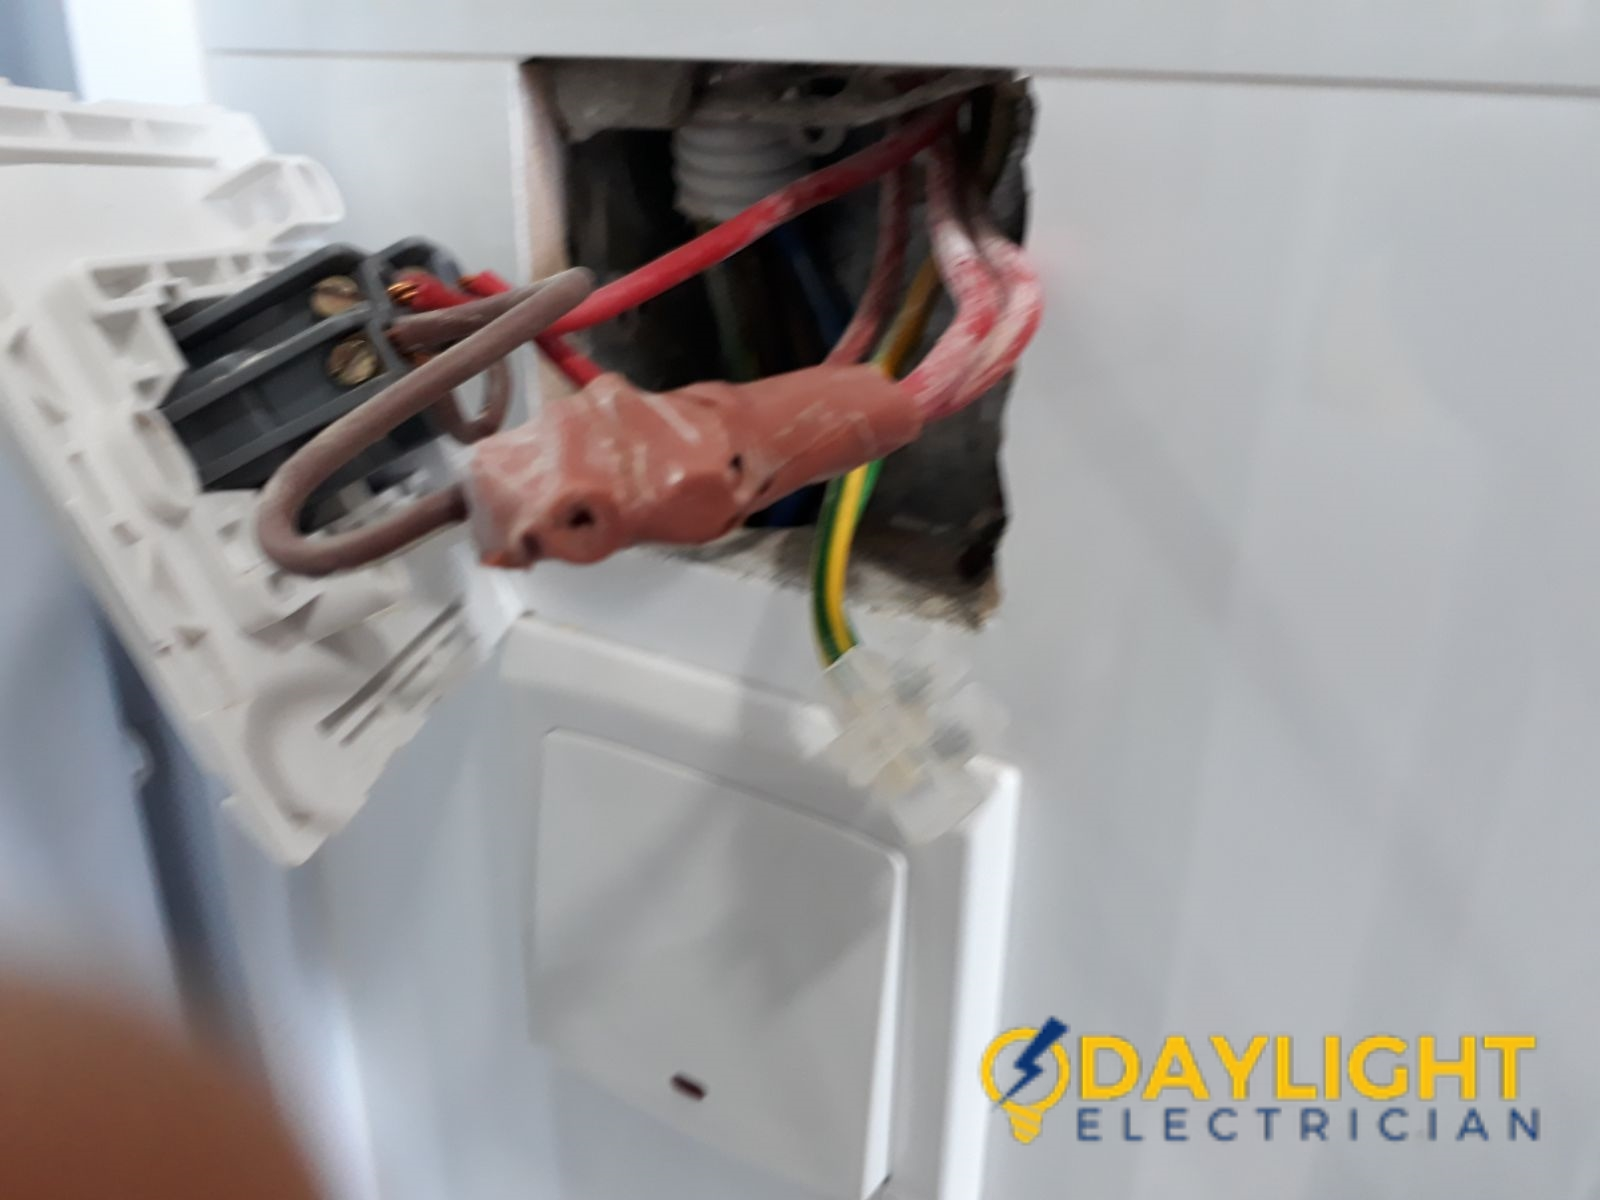 Readjusting-Light-Switch-Incorrect-Configuration-Electrician-Singapore-HDB-Tampines-1_wm